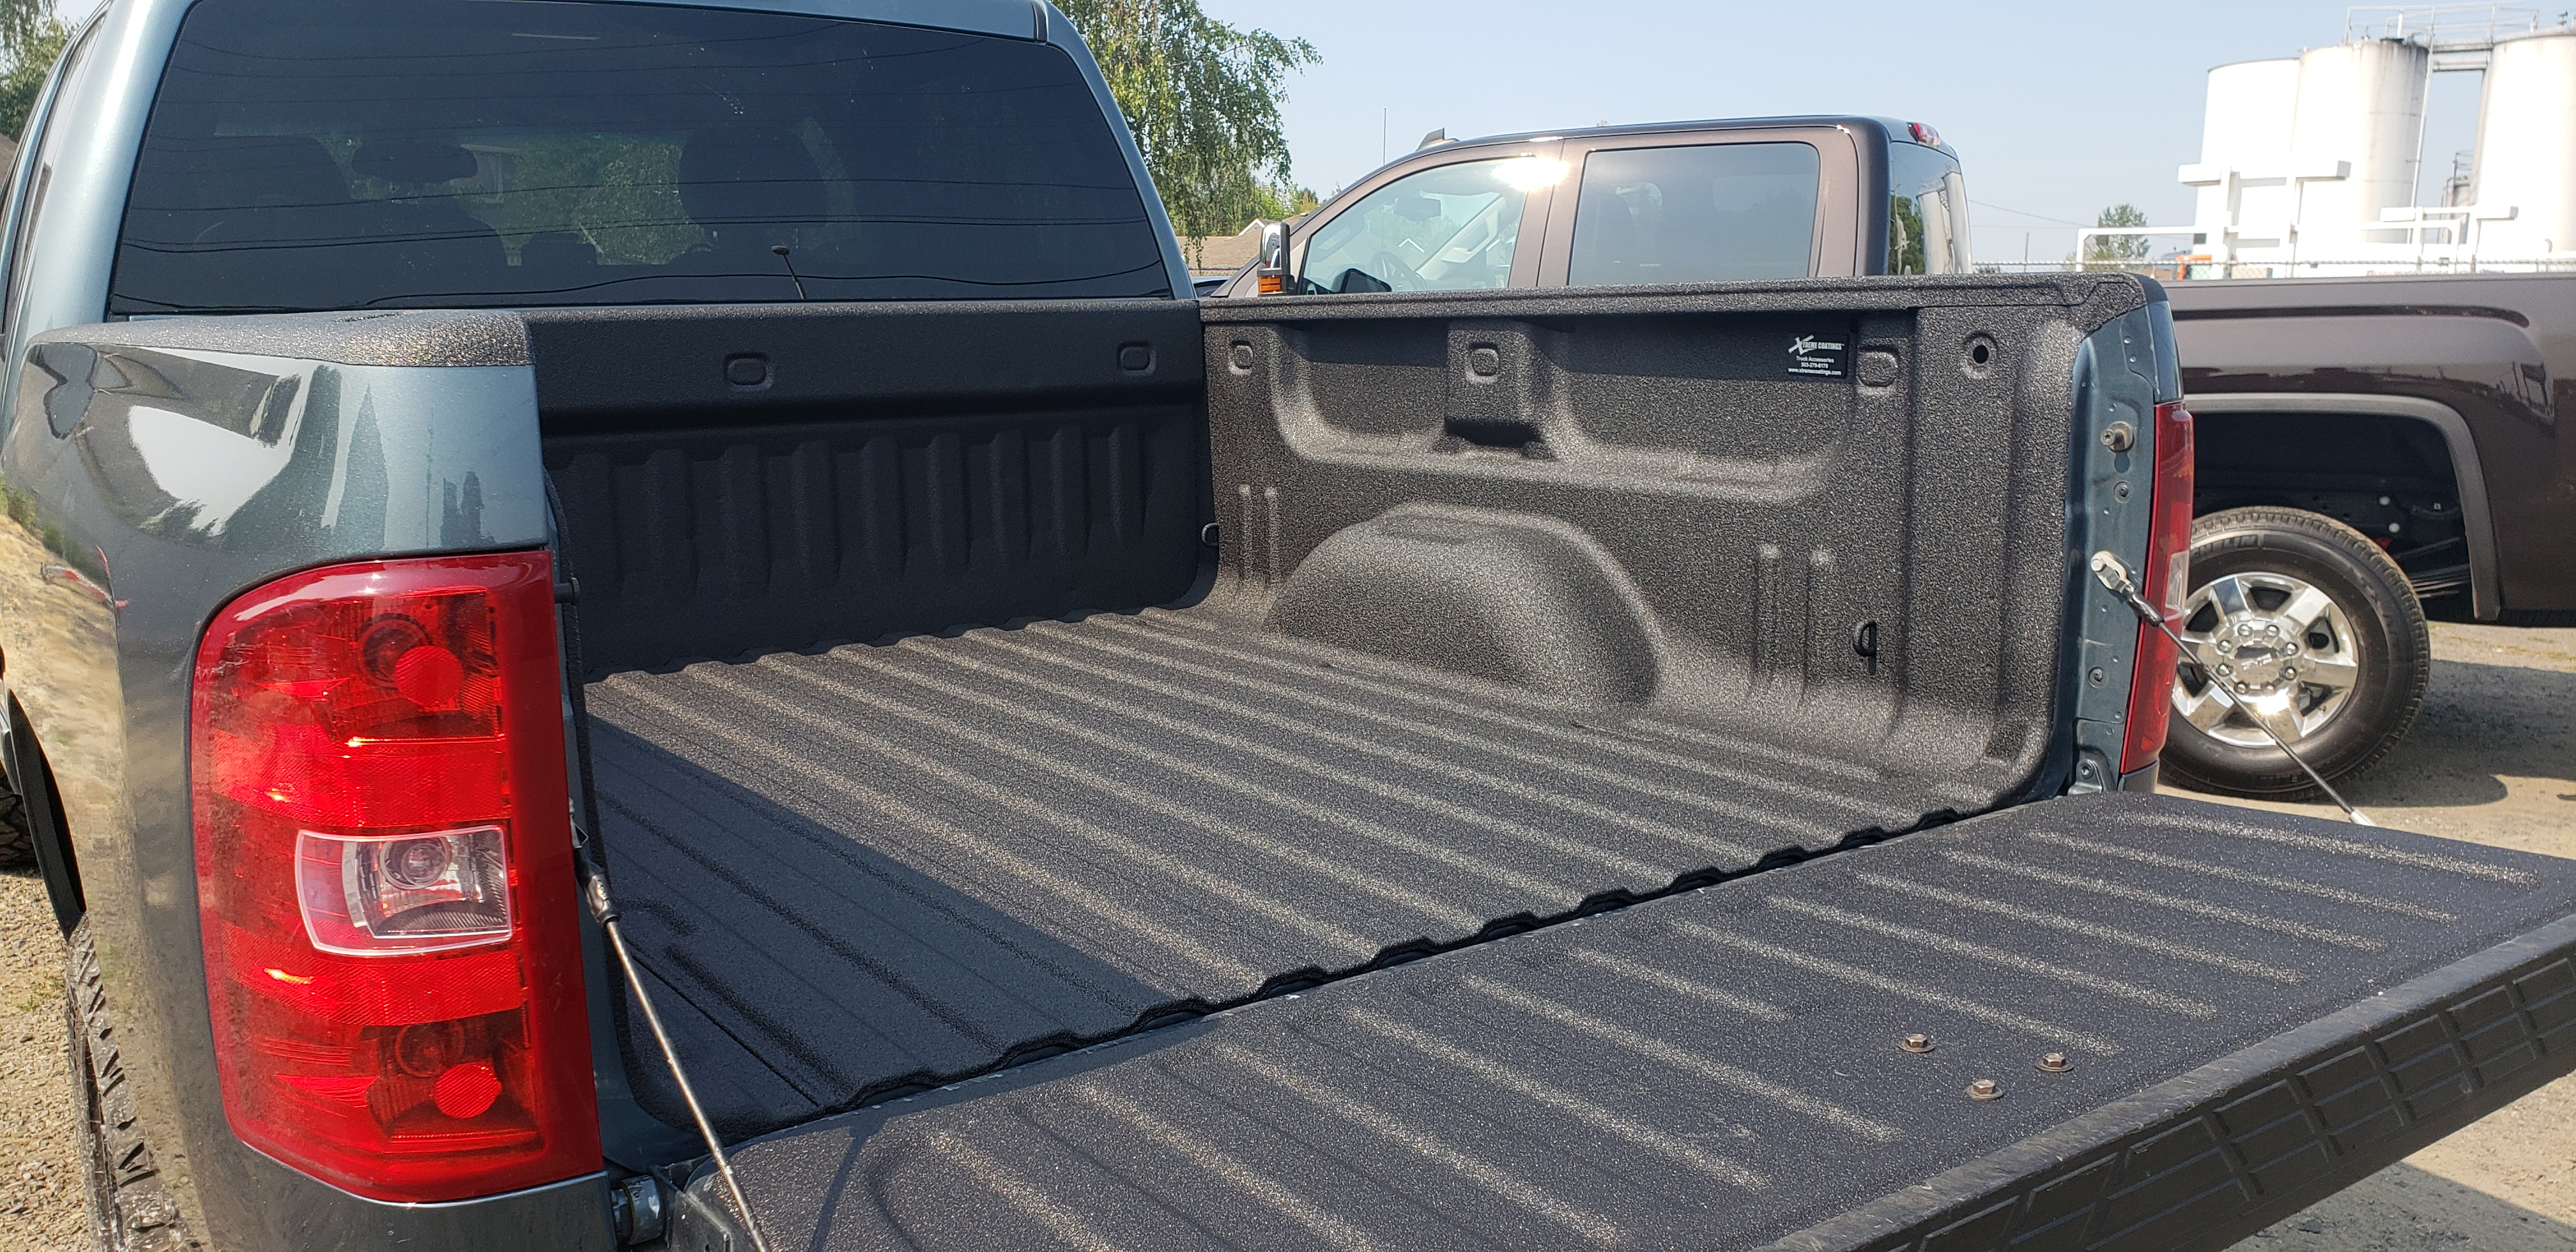 Truck Accessories, Spray on Bedliners, Trailer hitches, Window tinting, Wheels and tires